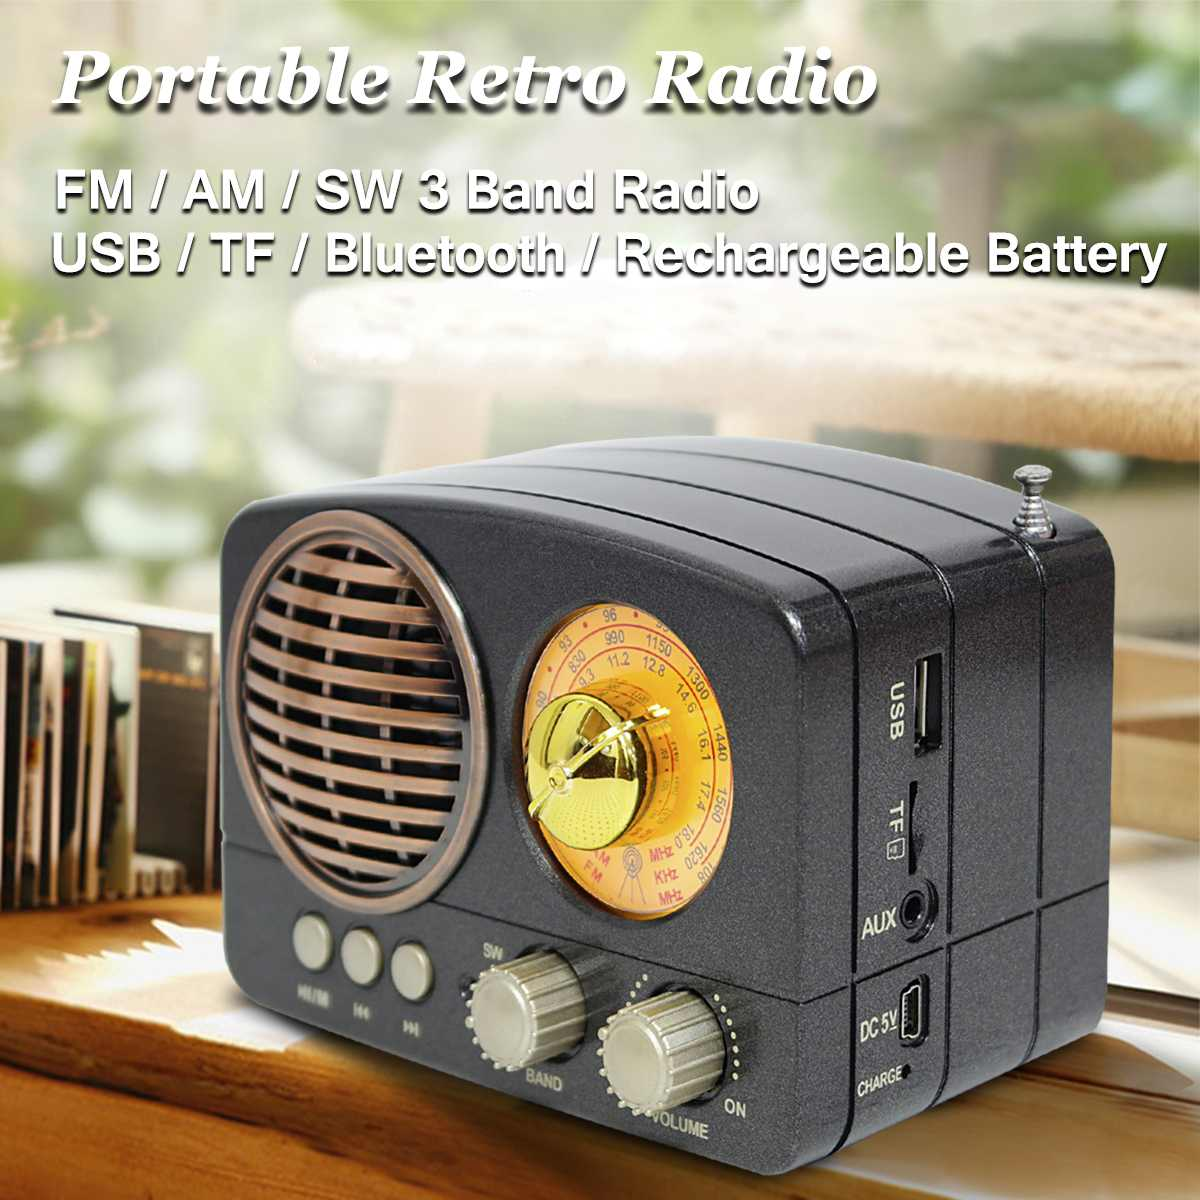 MIni Portable Retro Radio Handheld Receiver AM FM SW+bluetooth Speaker AUX USB TF MP3 Phone Music Player Rechargeable Radio